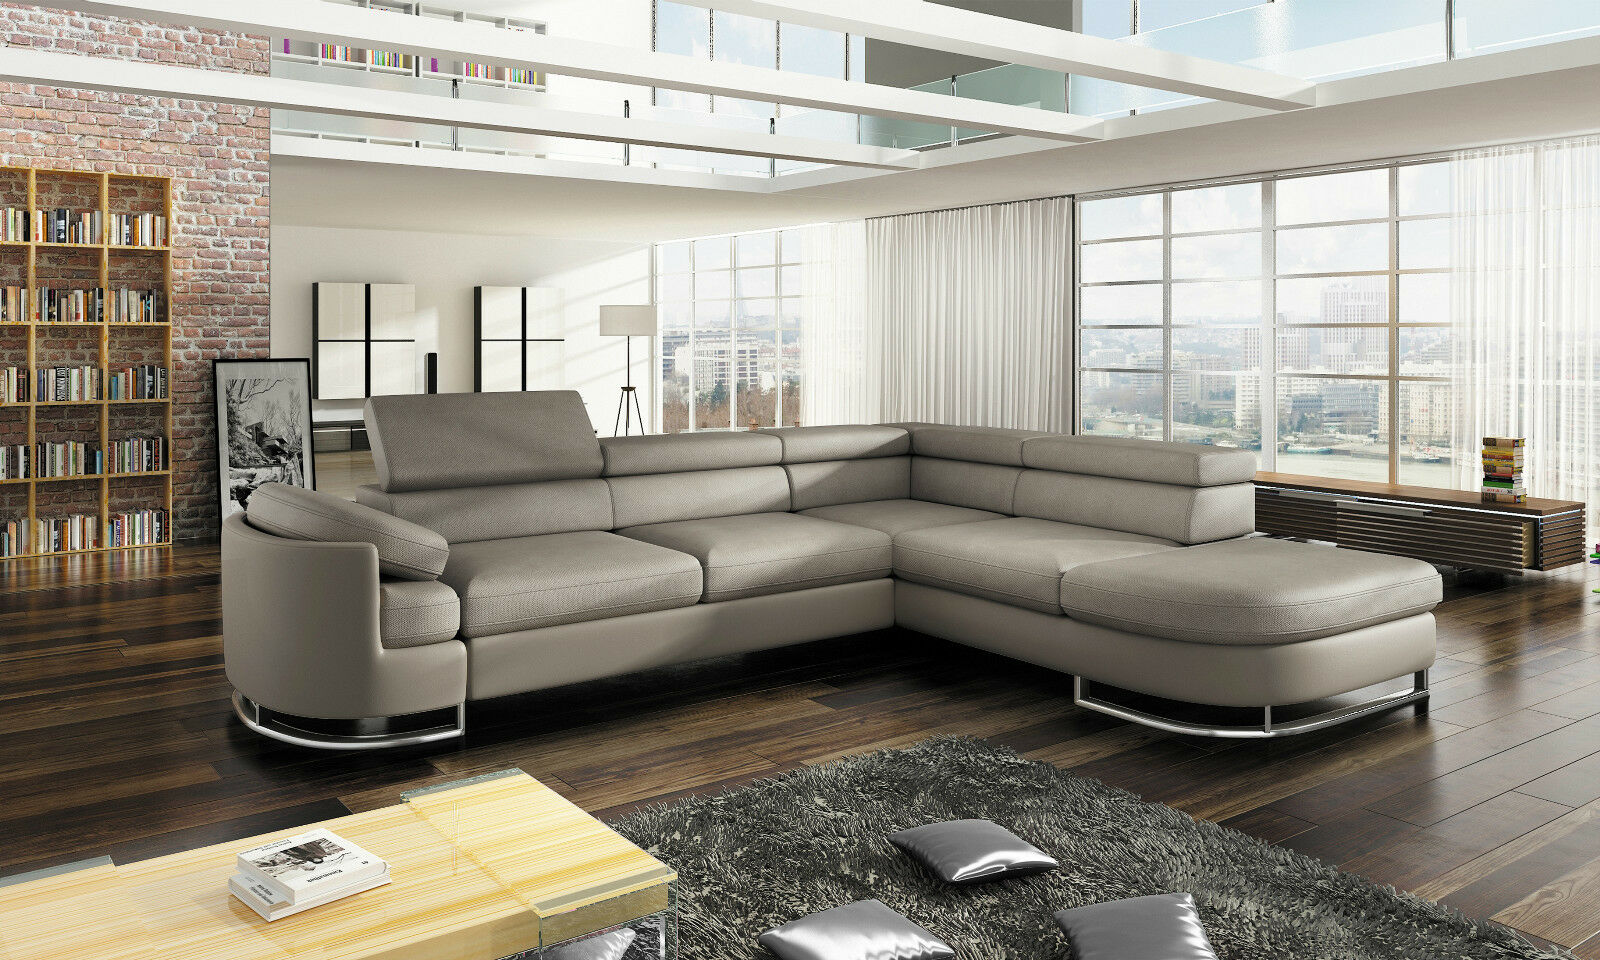 couchgarnitur ice sofa eckcouch polstergarnitur schlaffunktion couch ecksofa kaufen bei. Black Bedroom Furniture Sets. Home Design Ideas